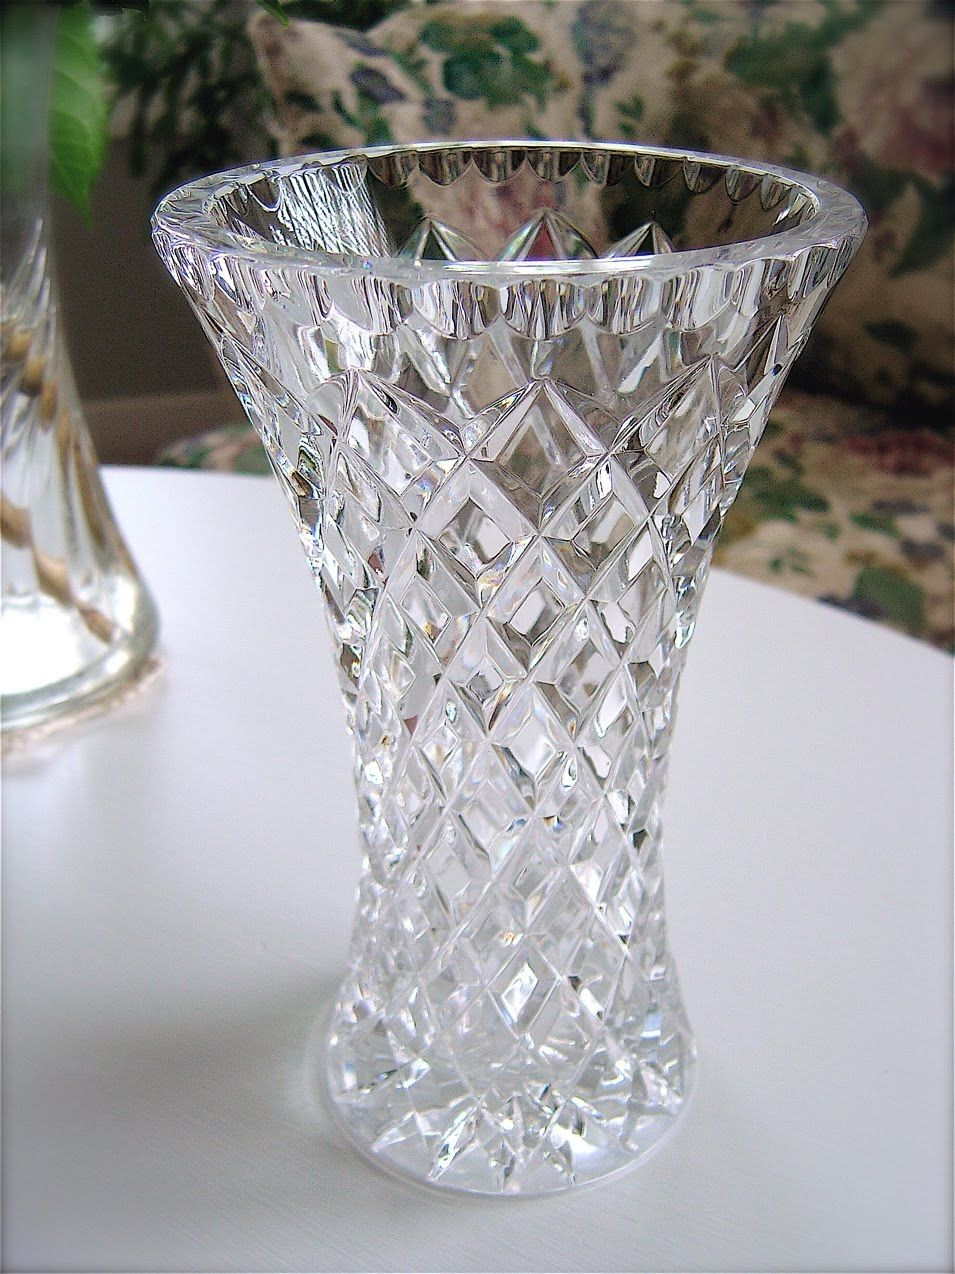 princess house lead crystal vase of crystal vases for sale vase pinterest crystal vase and crystals with regard to 74547ff5034c00424f36cfbda4cb6c74